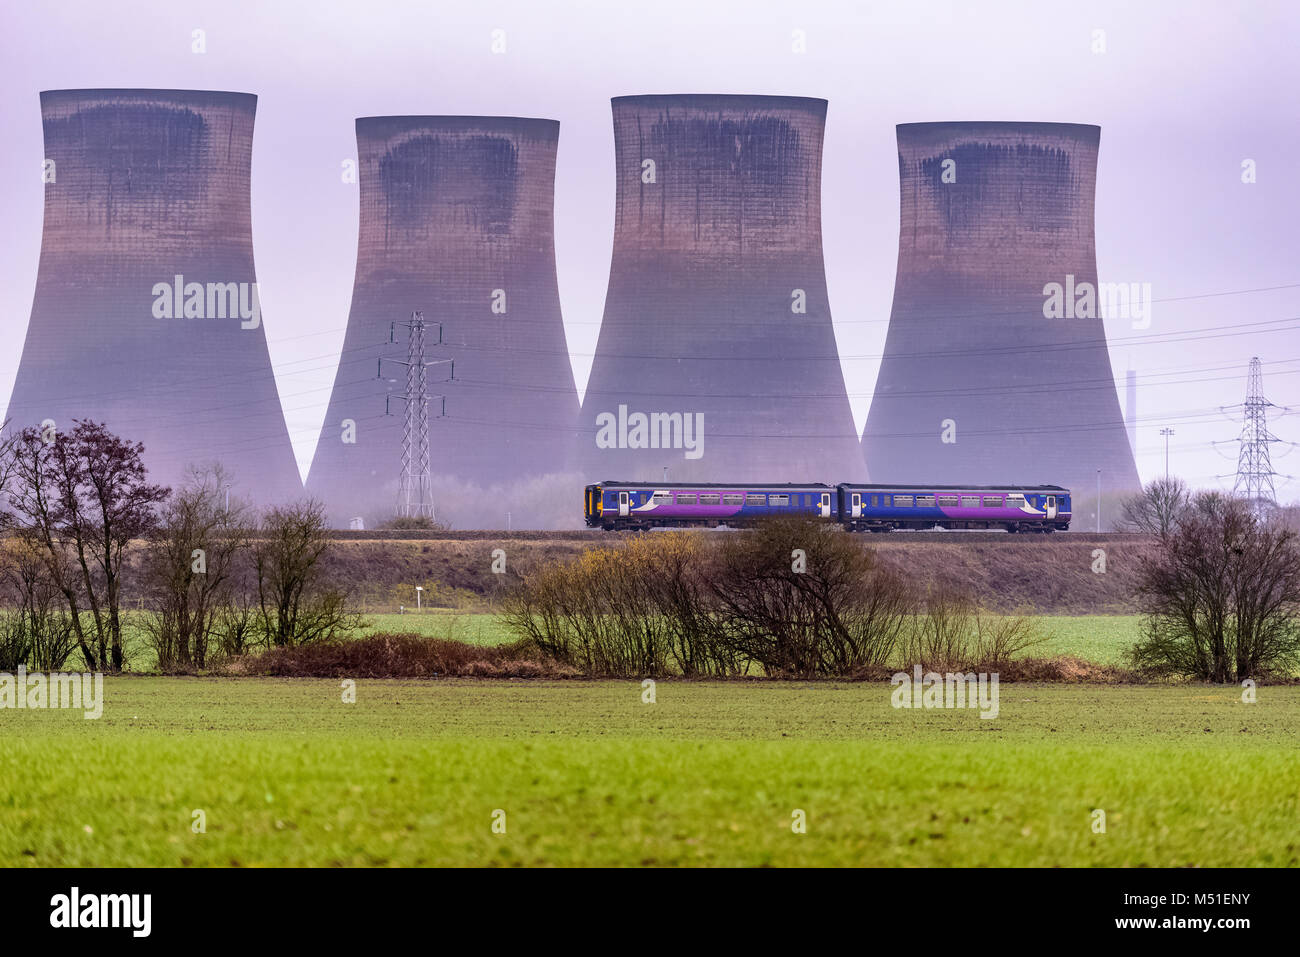 Northern Sprinter train with Fiddlers Ferry power station cooling towers in the background. - Stock Image